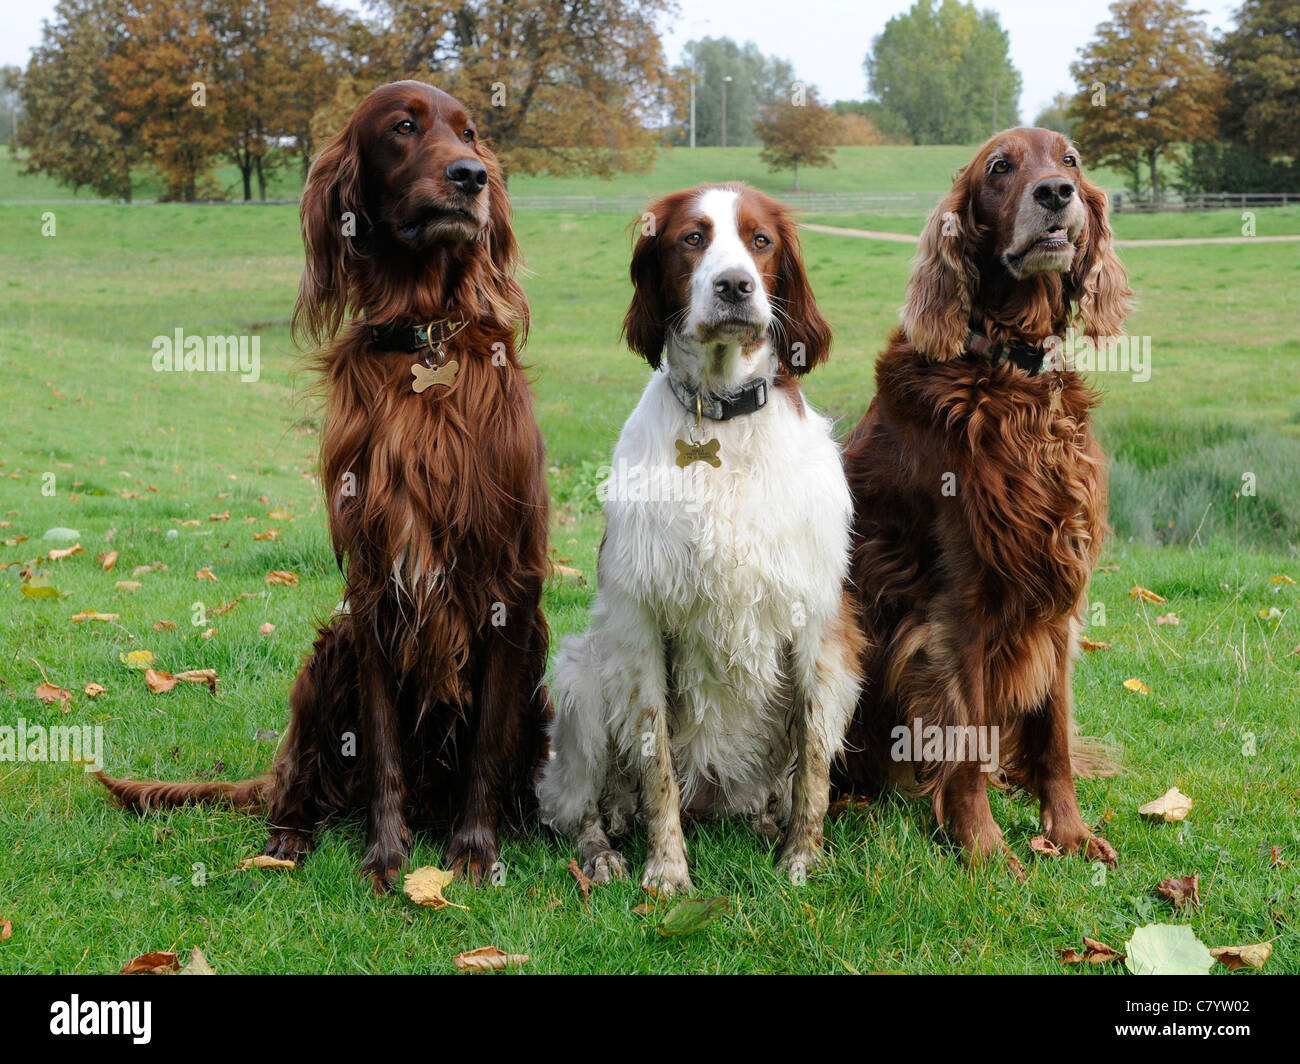 Three English setters pulling silly faces - Stock Image